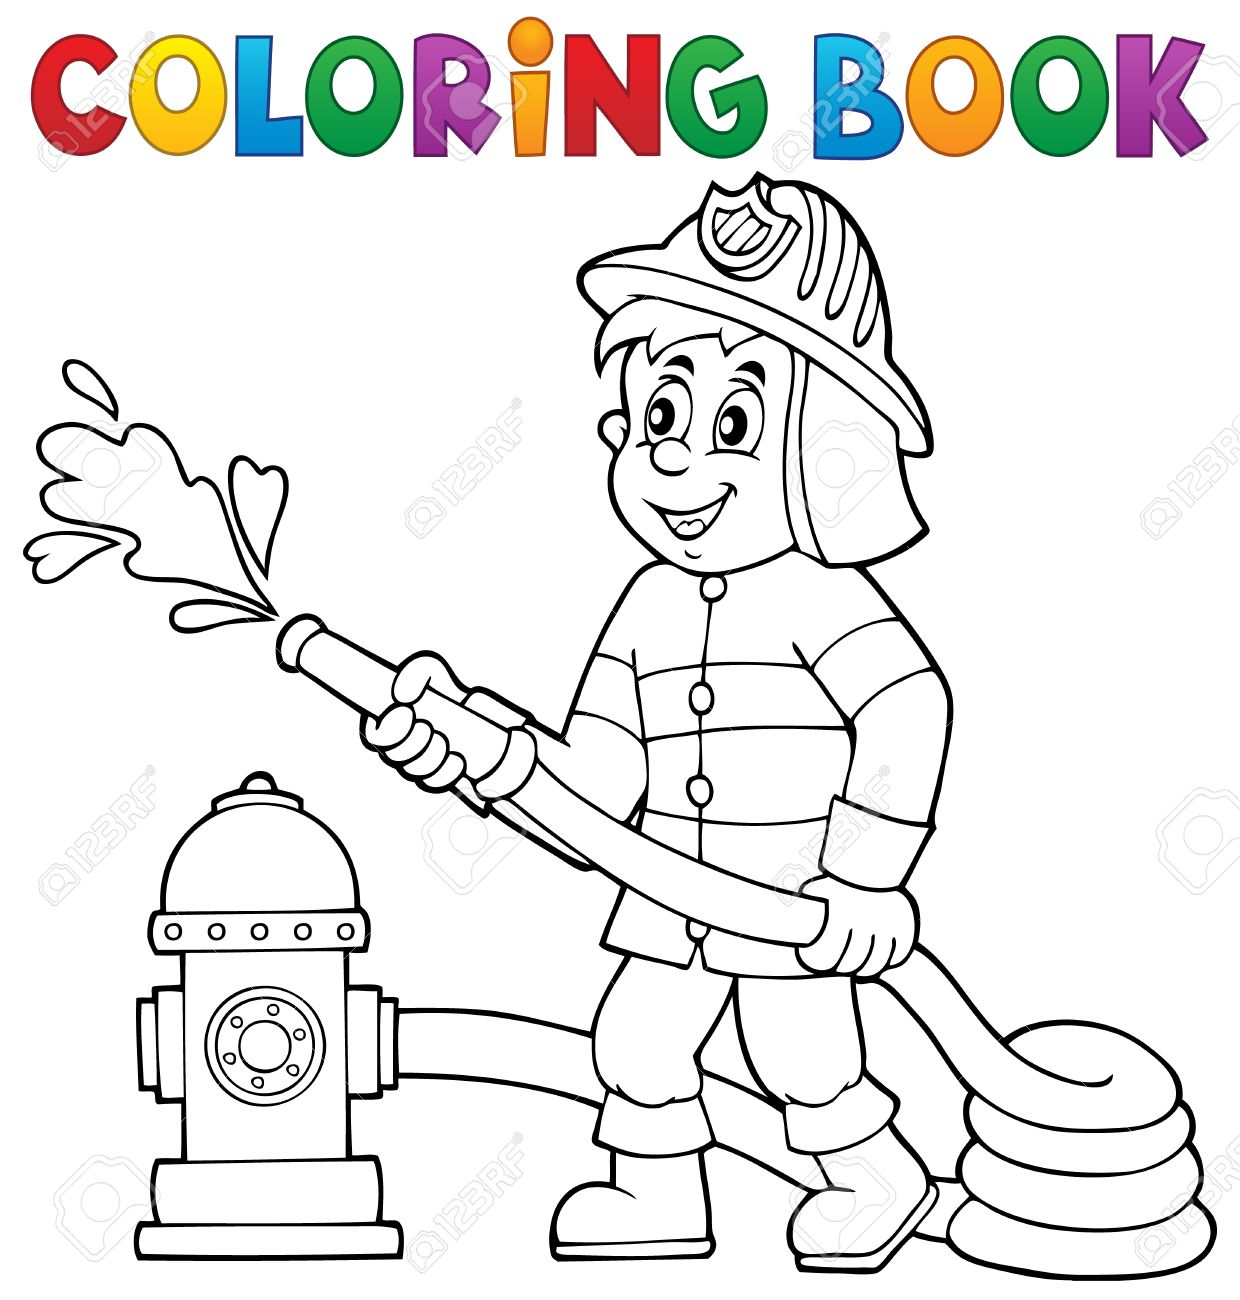 Coloring book firefighter theme